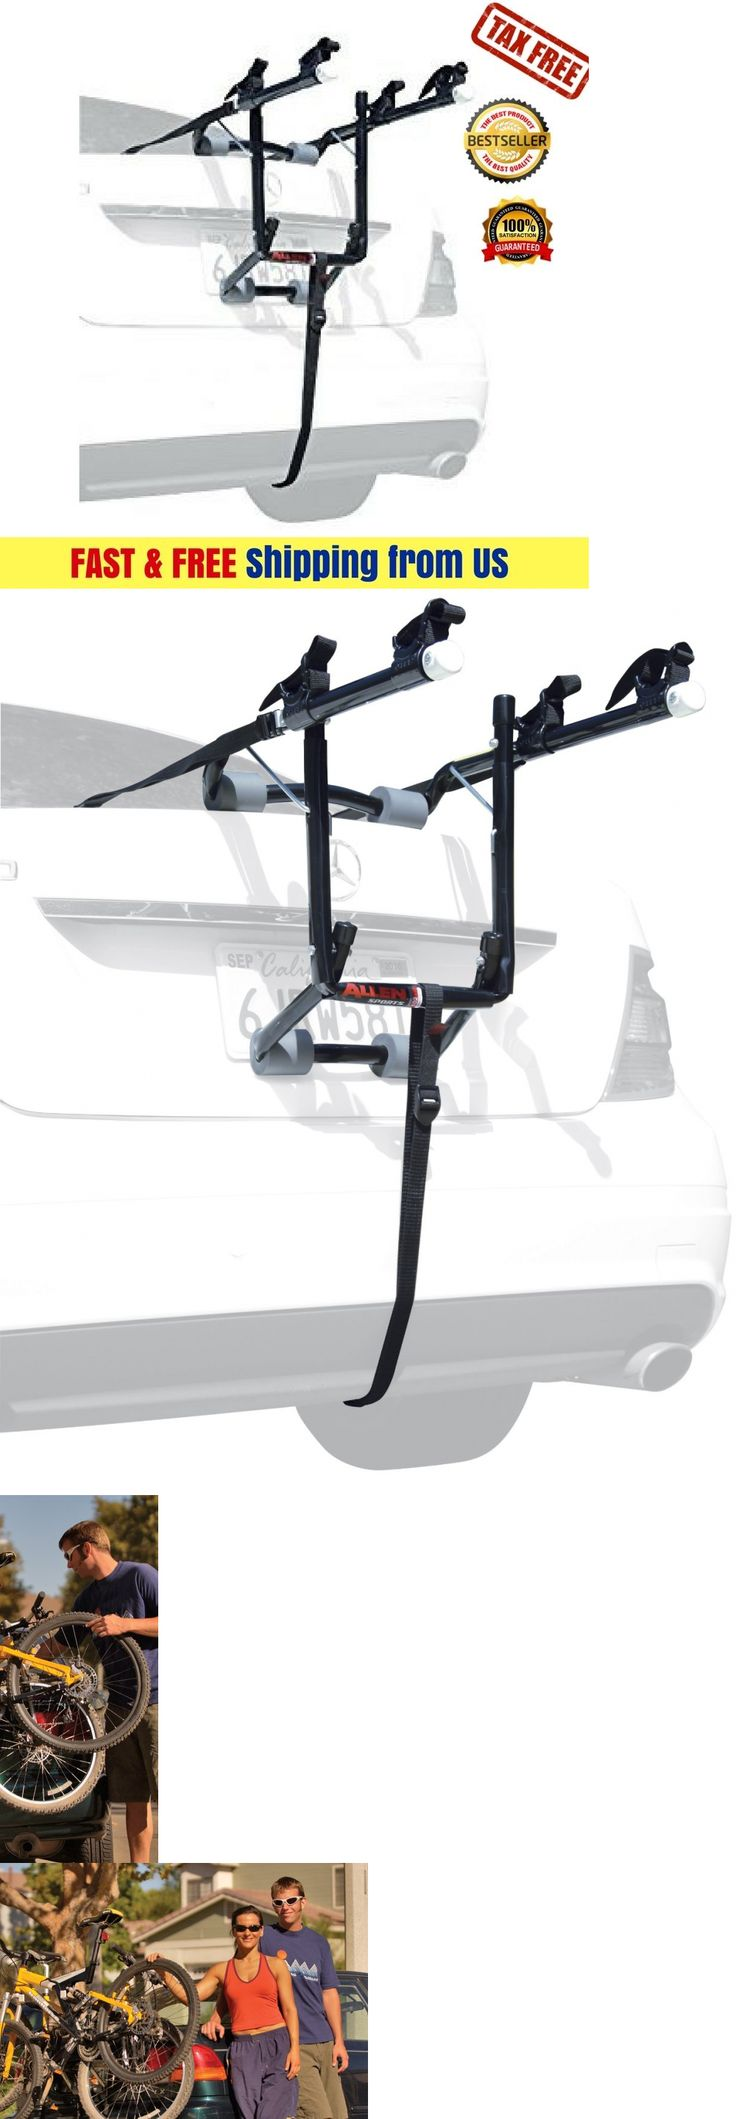 Car and truck racks 177849 new styles deluxe 2 bike trunk mount rack carrier easily